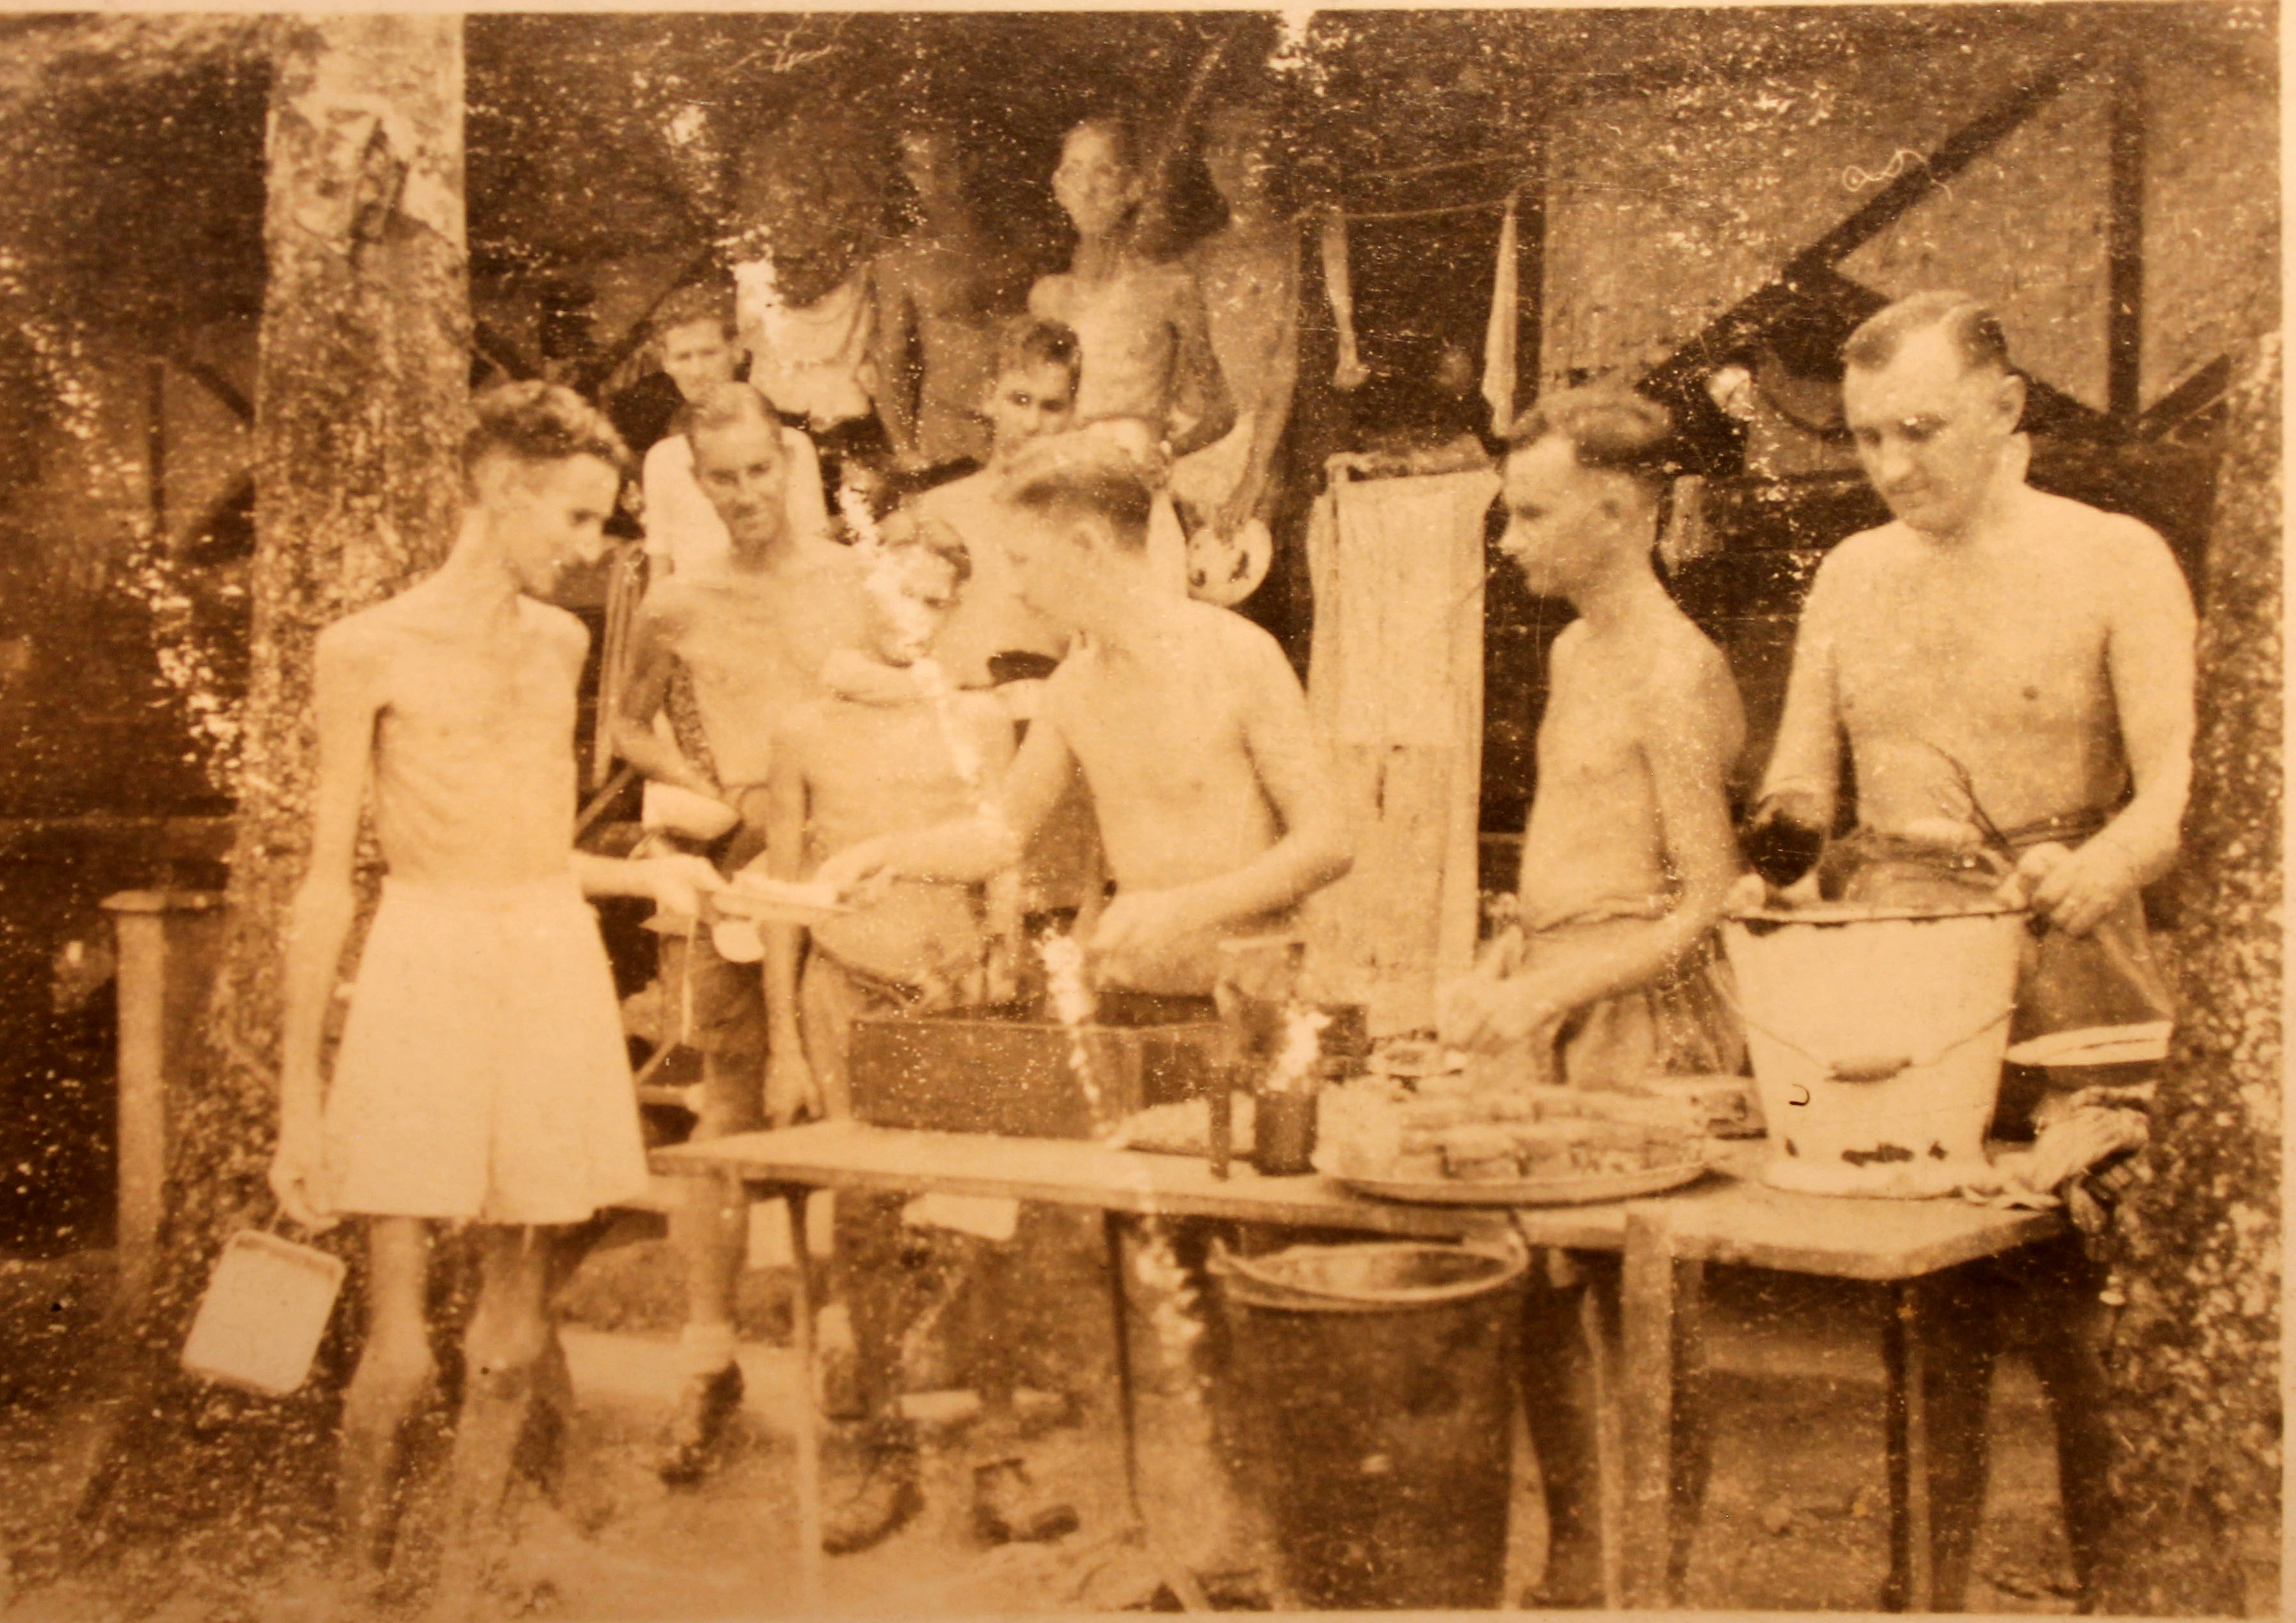 Photograph showing a line of men waiting to be served food. They are all only wearing shorts. Some are very underweight.